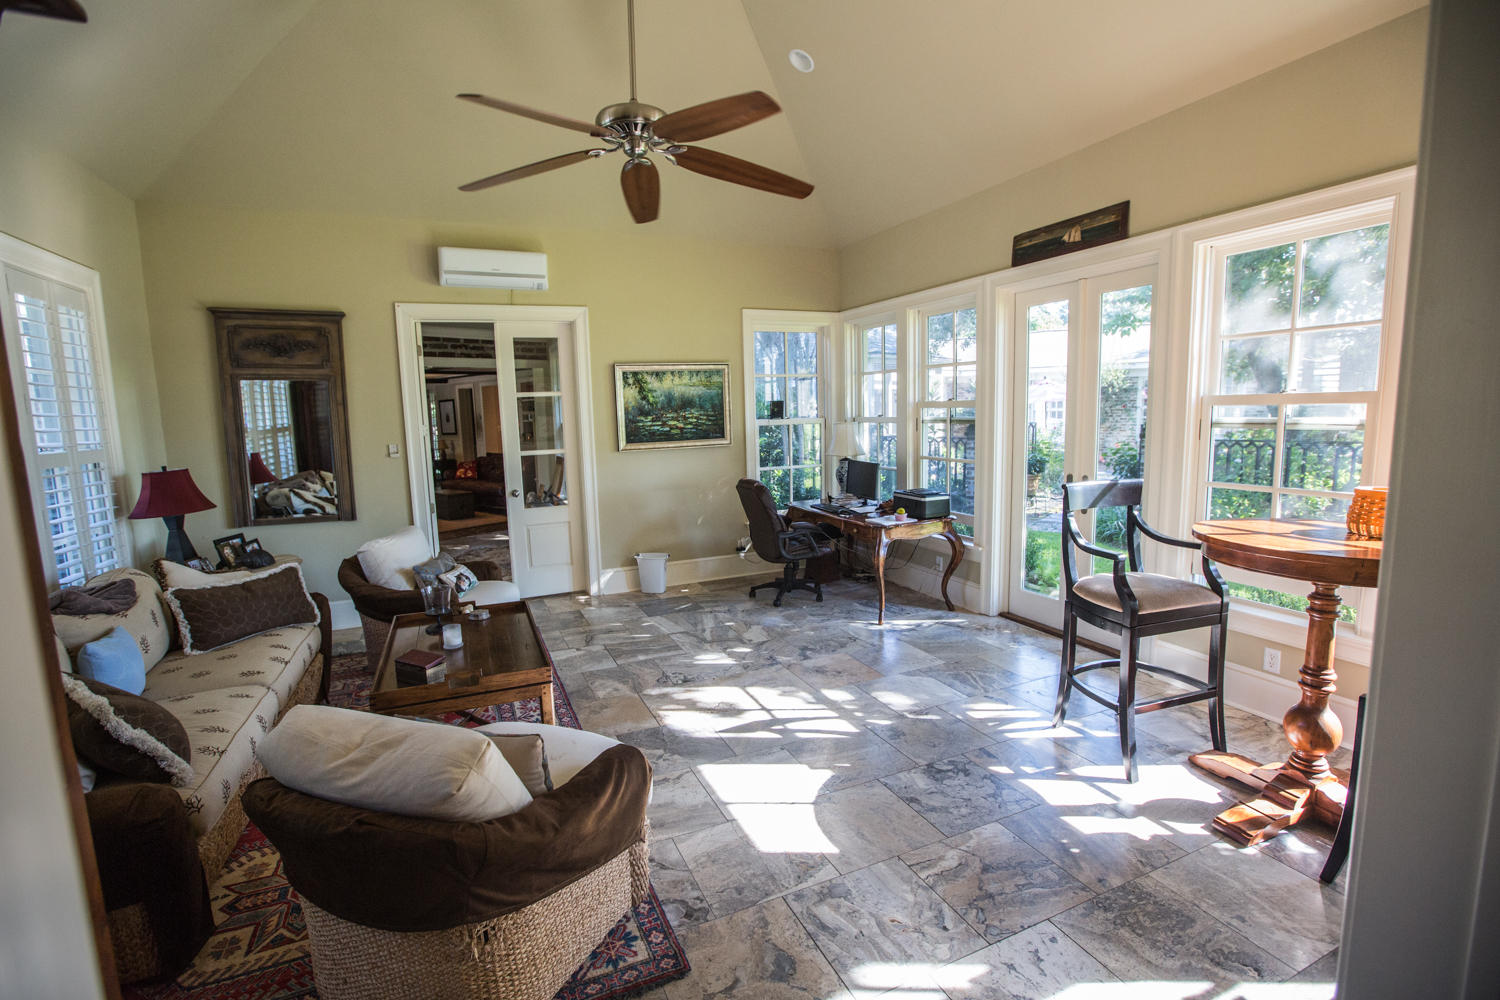 Edgewater Park Homes For Sale - 120 Edgewater, Charleston, SC - 44